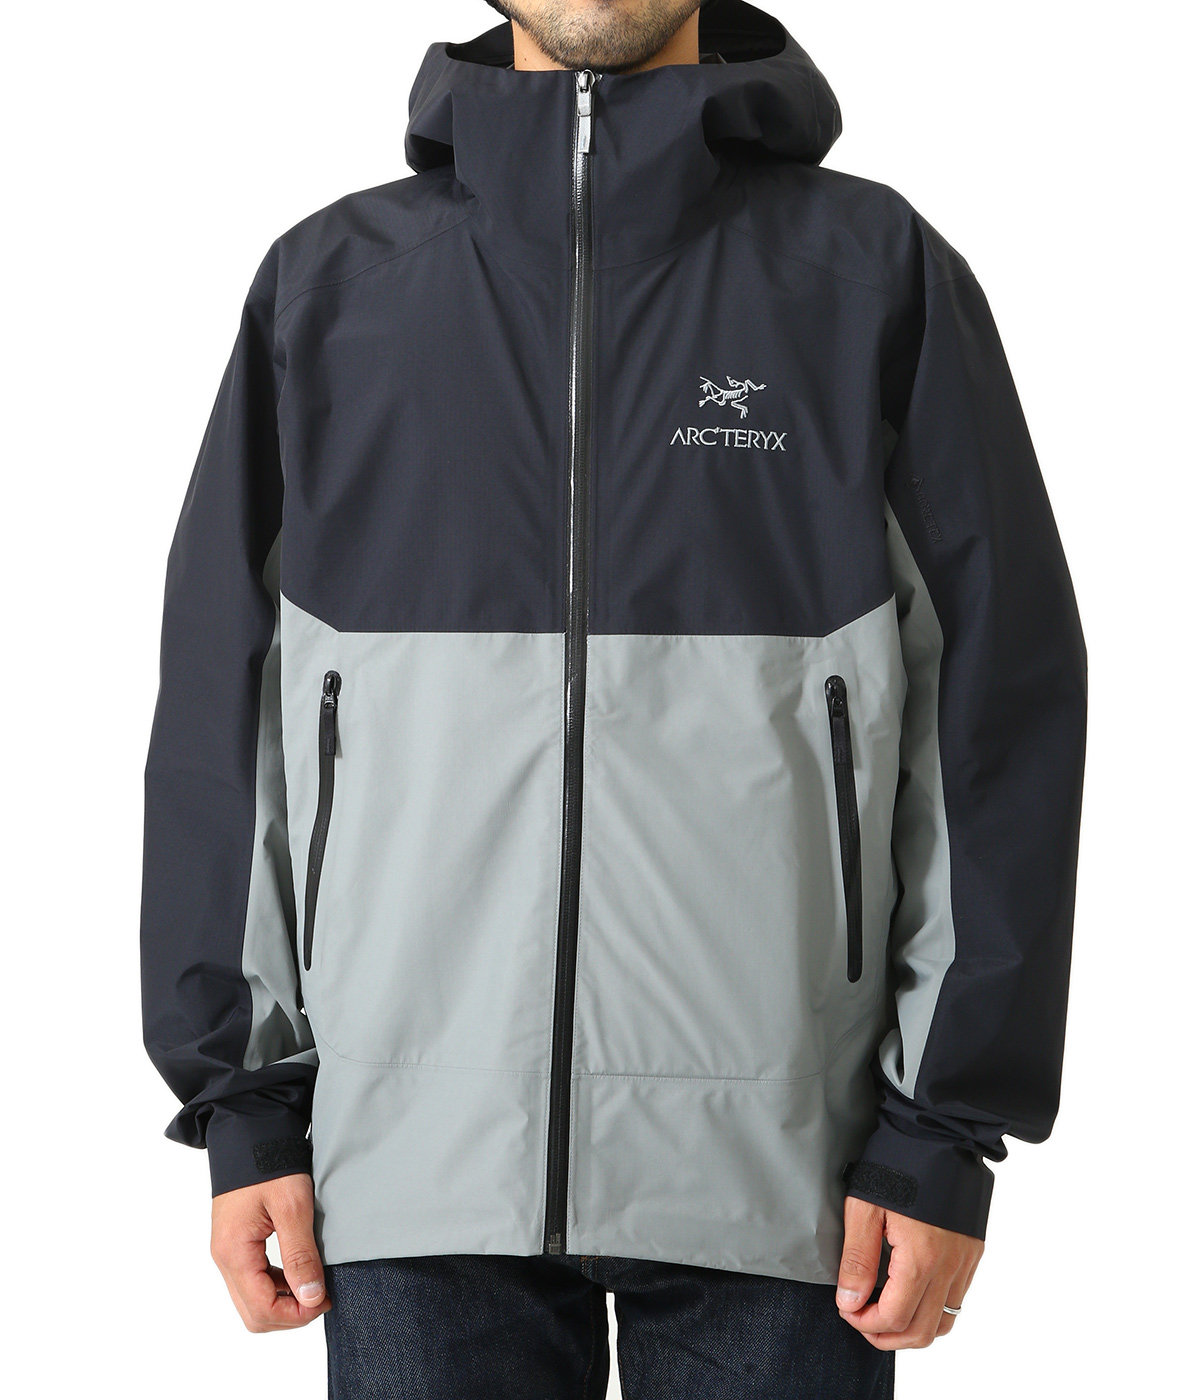 Zeta SL Jacket Mens -SMU/BLACK-